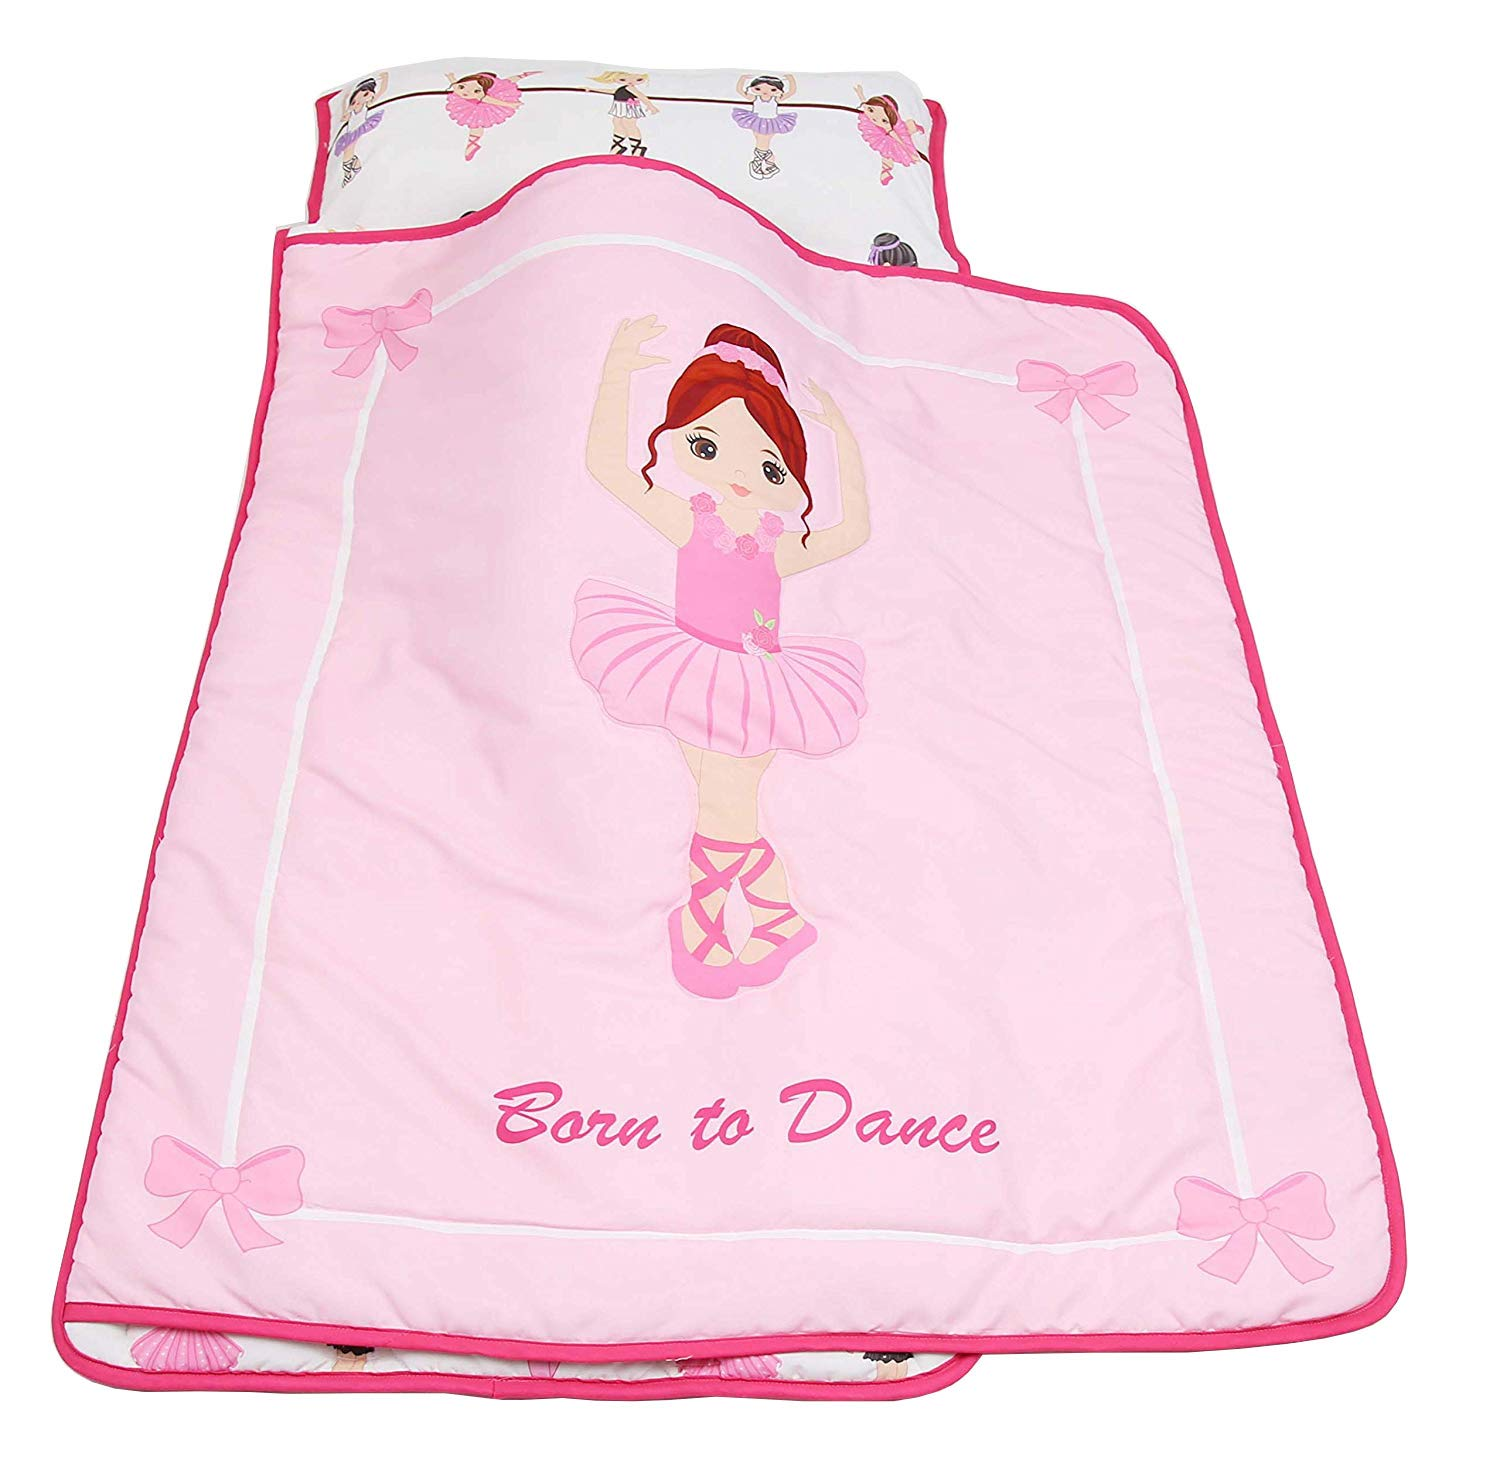 Everyday Kids Toddler Nap Mat with Removable Pillow -Born to Dance Ballerina- Carry Handle with Straps Closure, Rollup Design, Soft Microfiber for Preschool, Daycare, Kindergarten Sleeping Bag